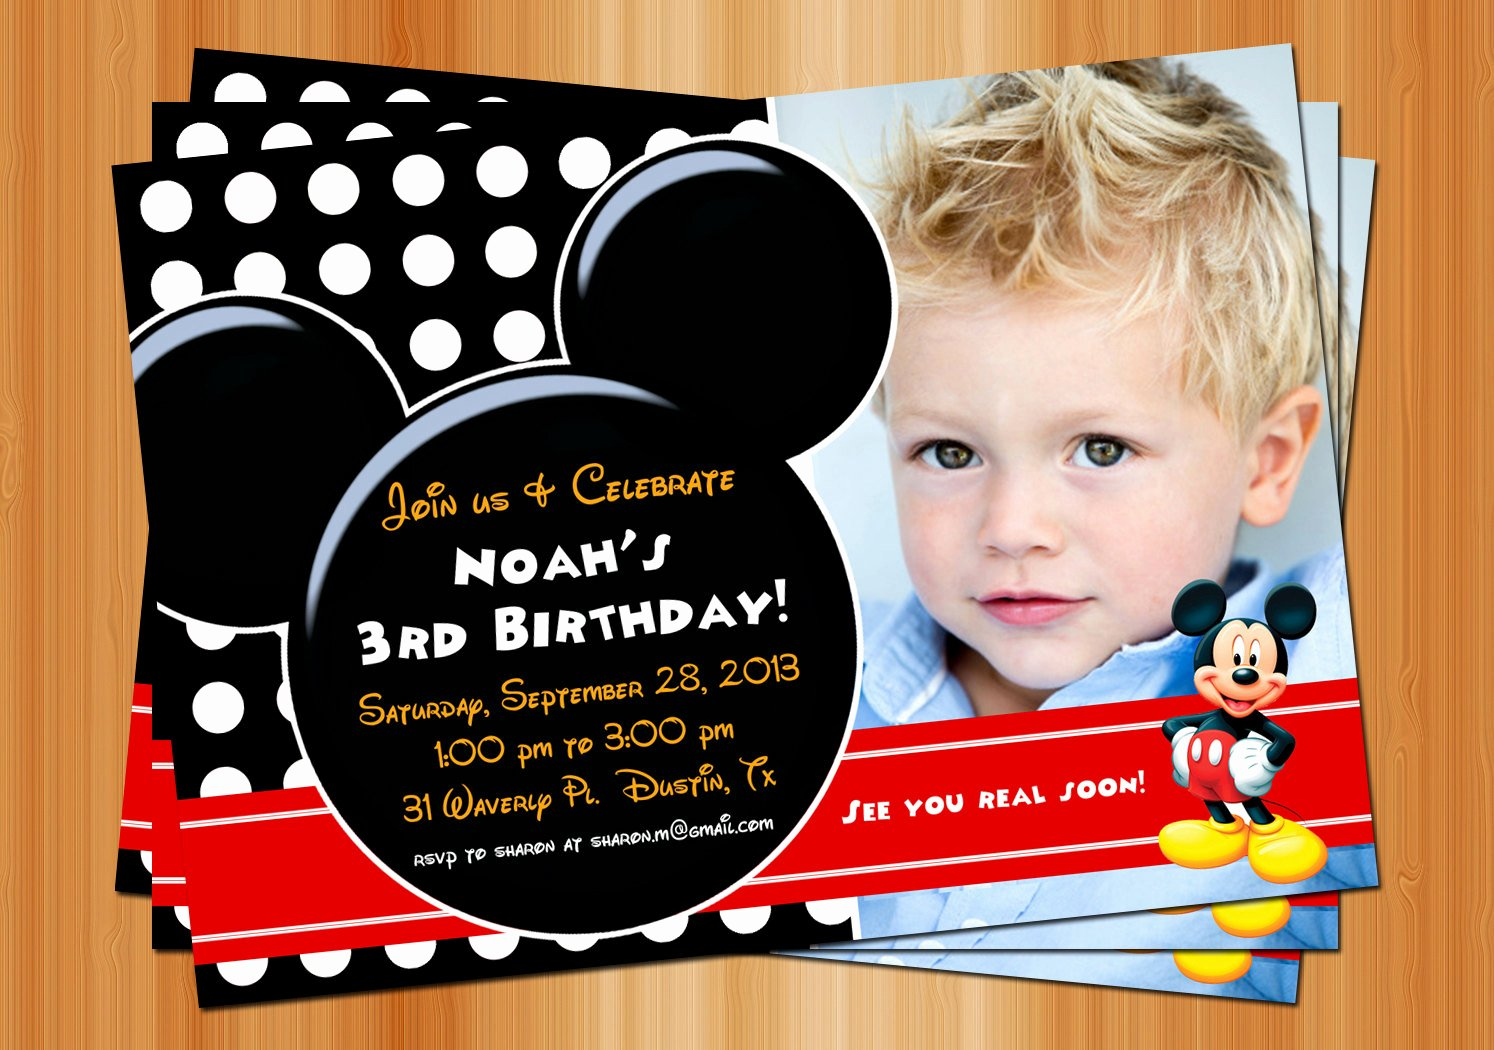 Mickey Mouse Clubhouse Birthday Invites Inspirational Mickey Mouse Clubhouse Invitations for Special Birthday Party